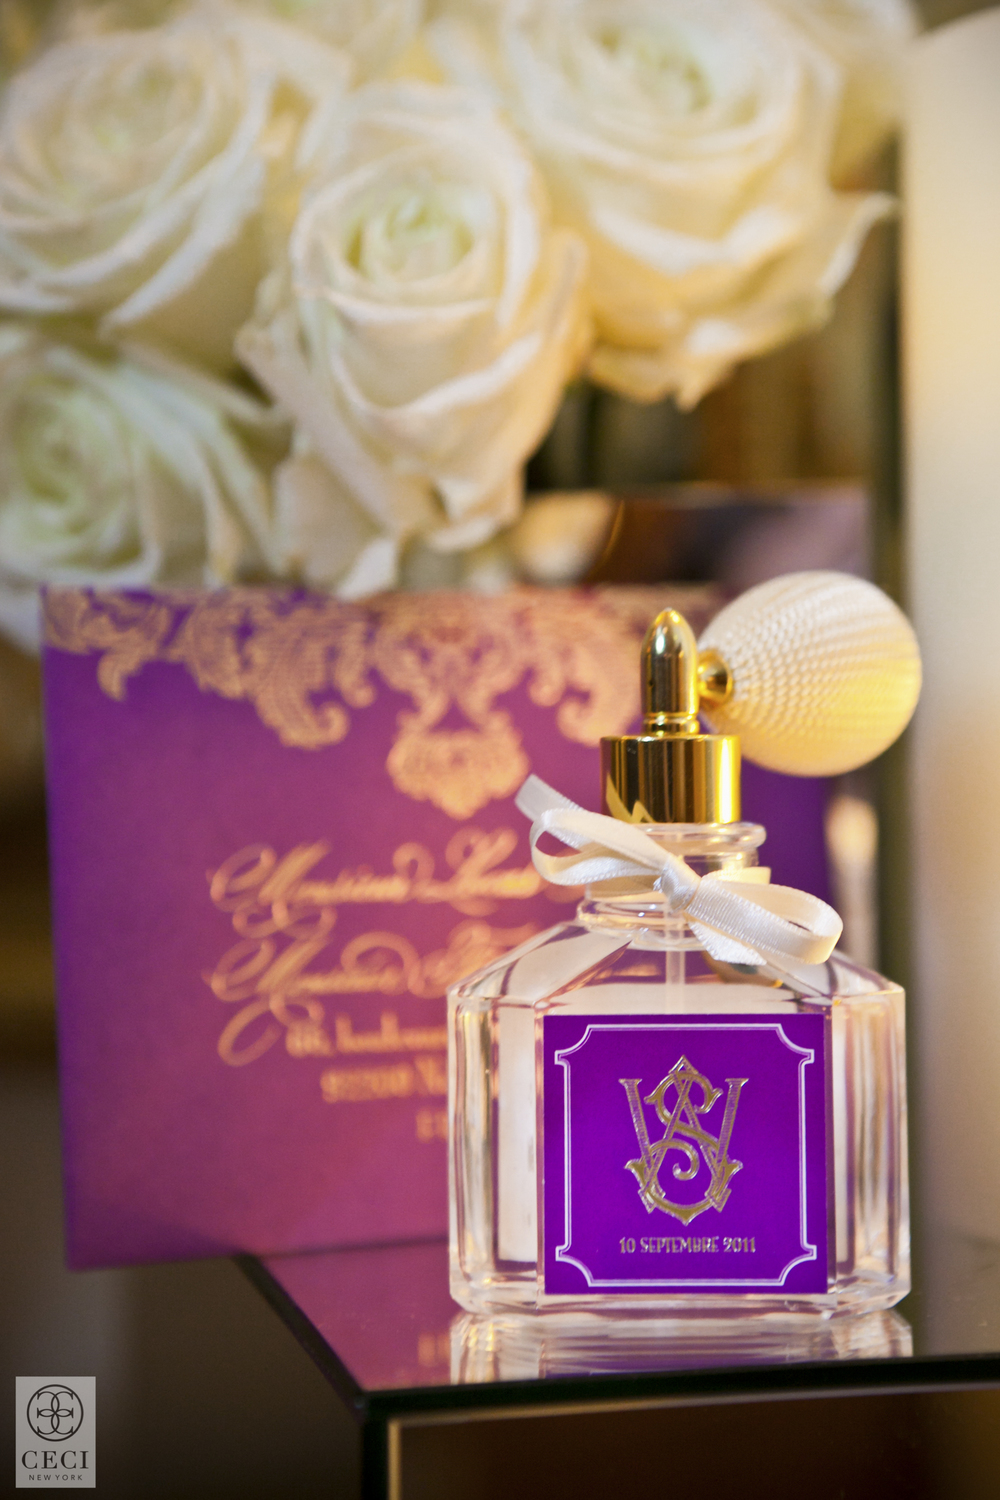 ceci_new_york_lucas_somoza_purple_regal_wediding_birthday_commitment_ceremony_invitation_logo_branding_perfume_gold_-9.jpg